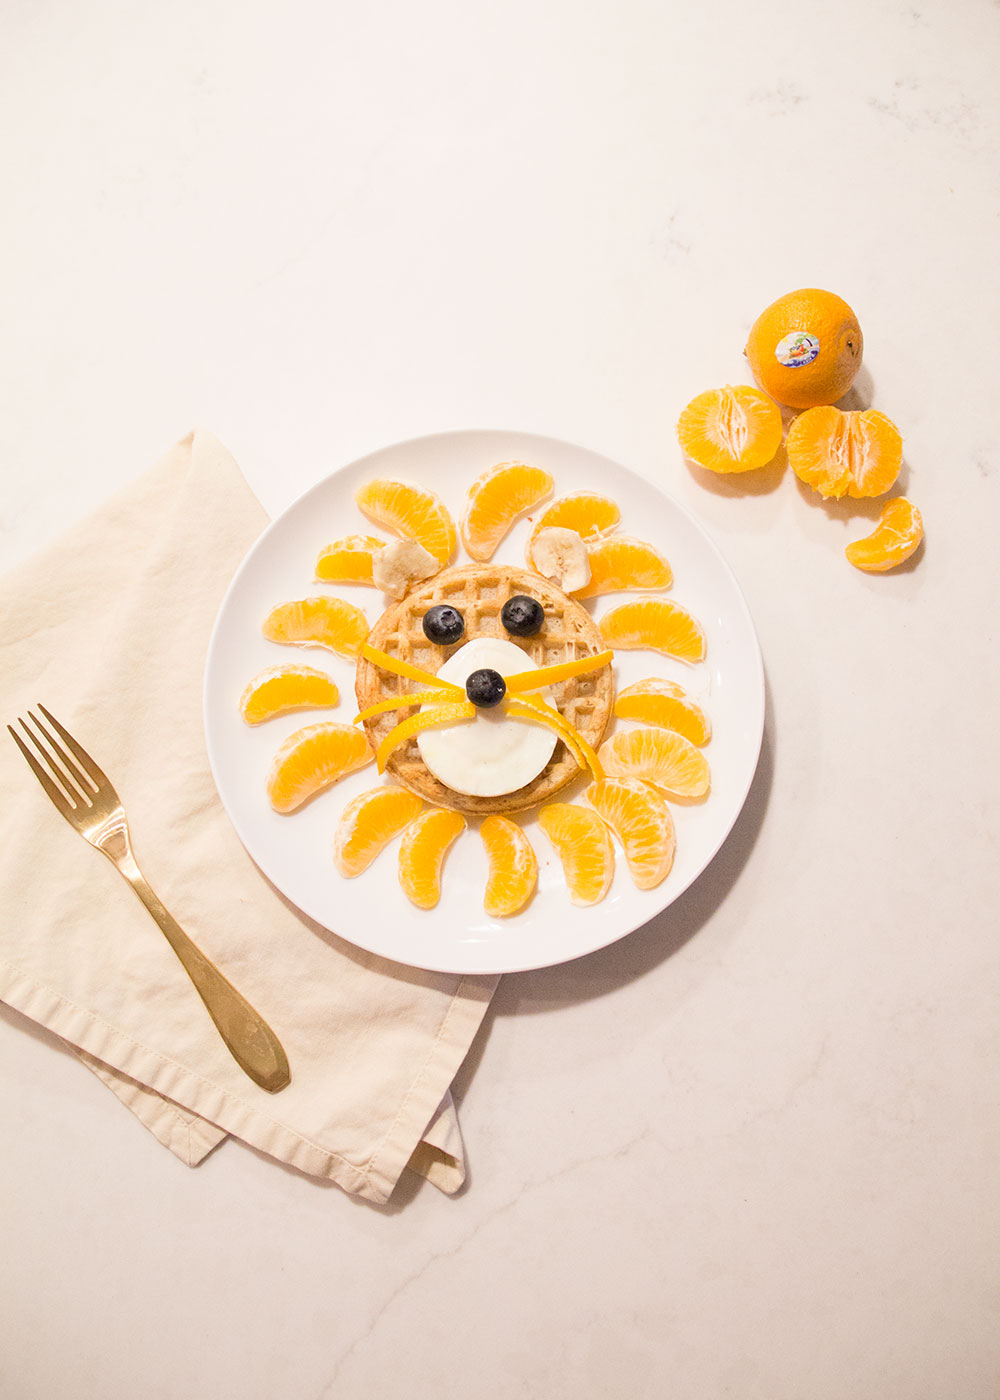 food art lion waffles for the kids' breakfast today | thelovedesignedlife.com #cuties #100daysofsunshine #sponsored